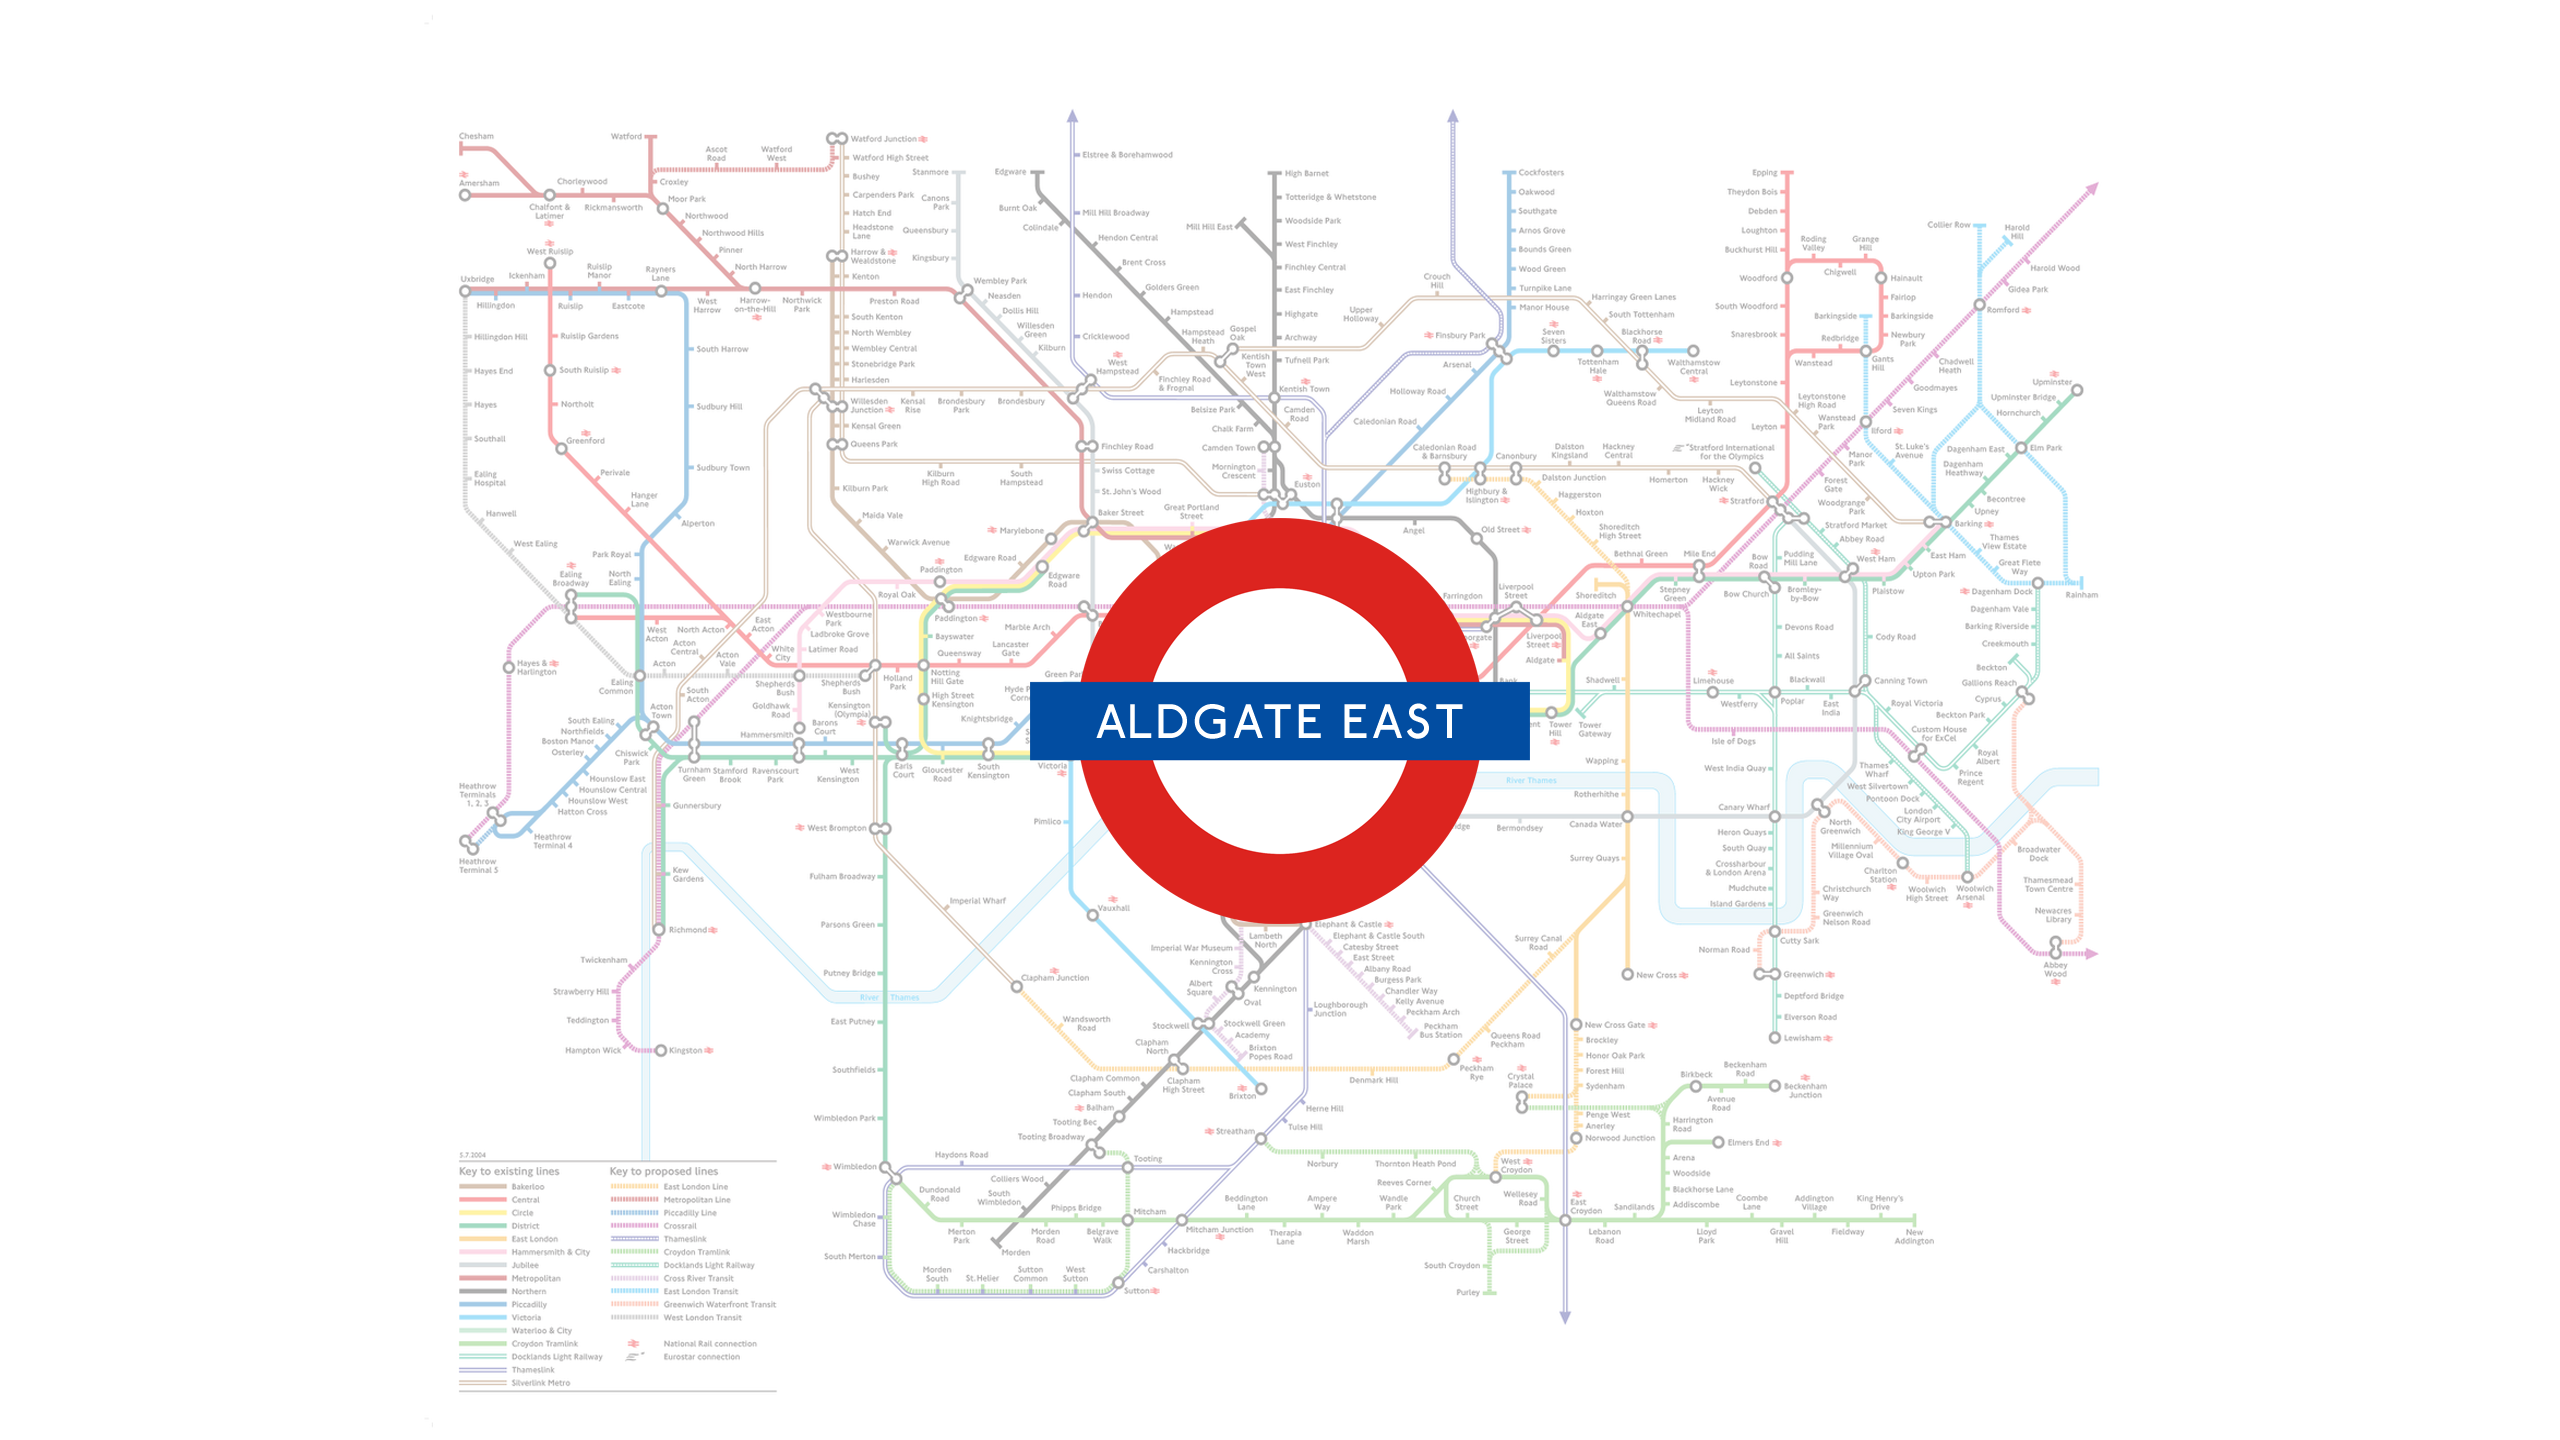 Aldgate East (Map)